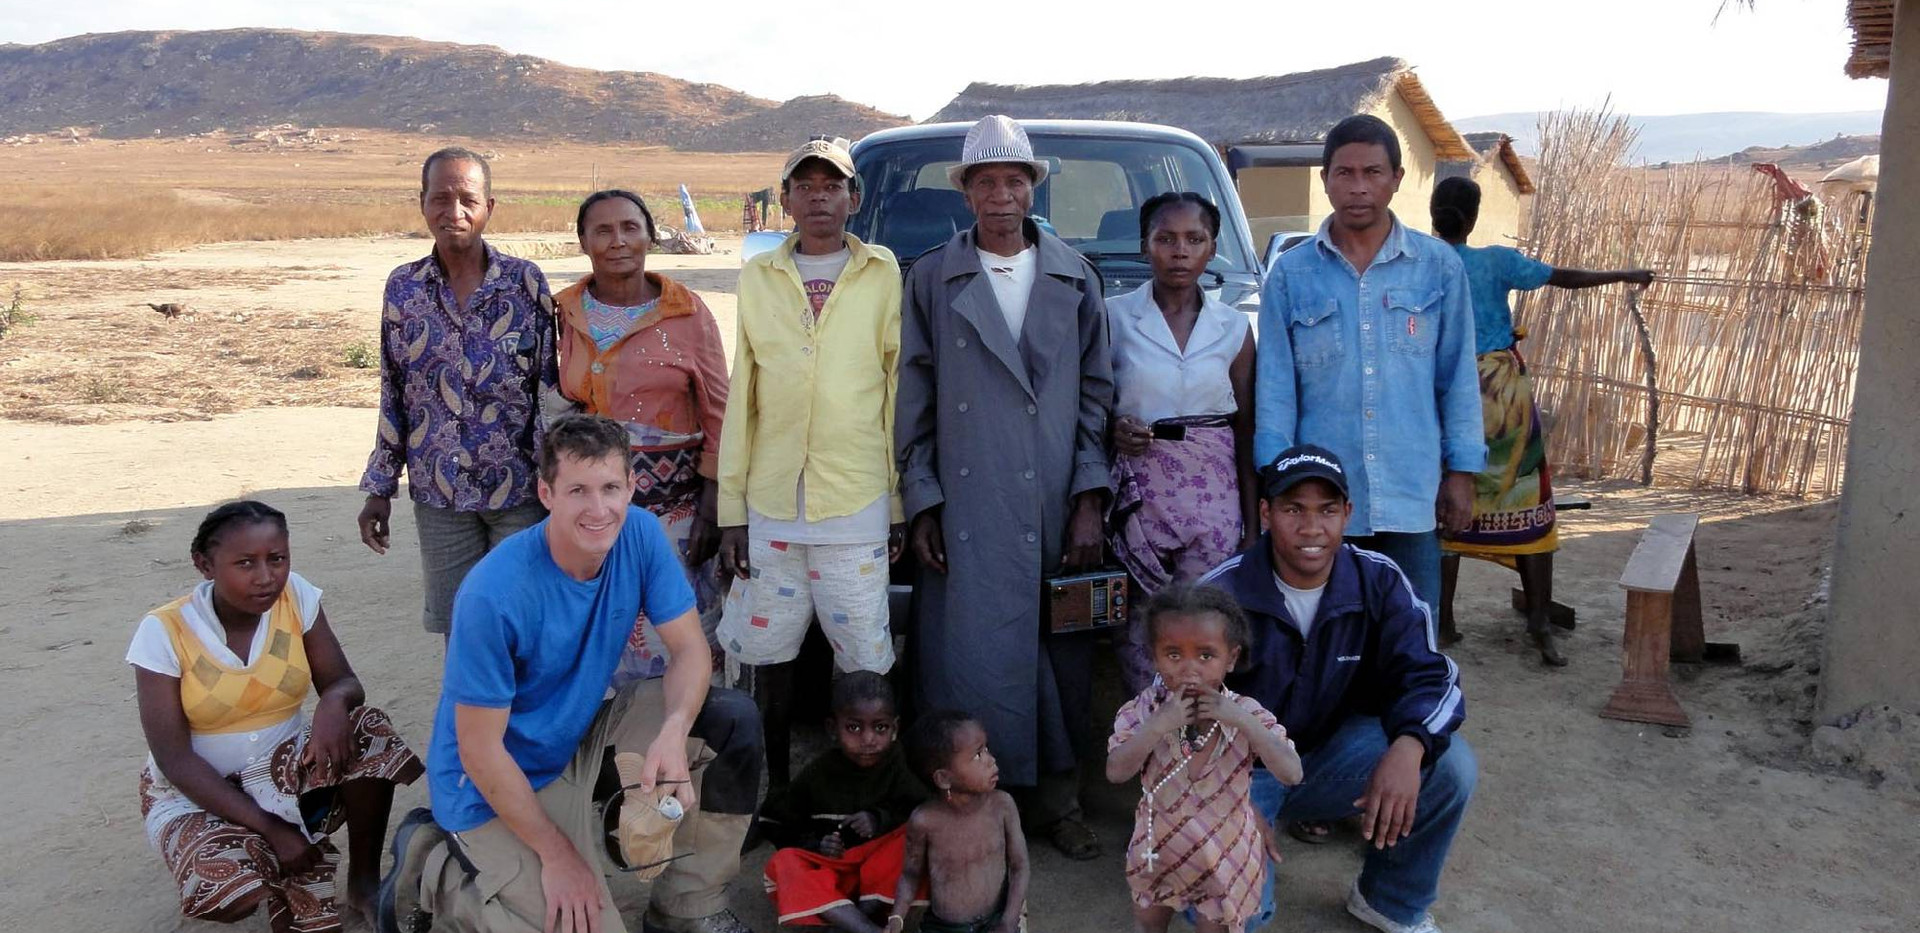 Villagers interested in our work.